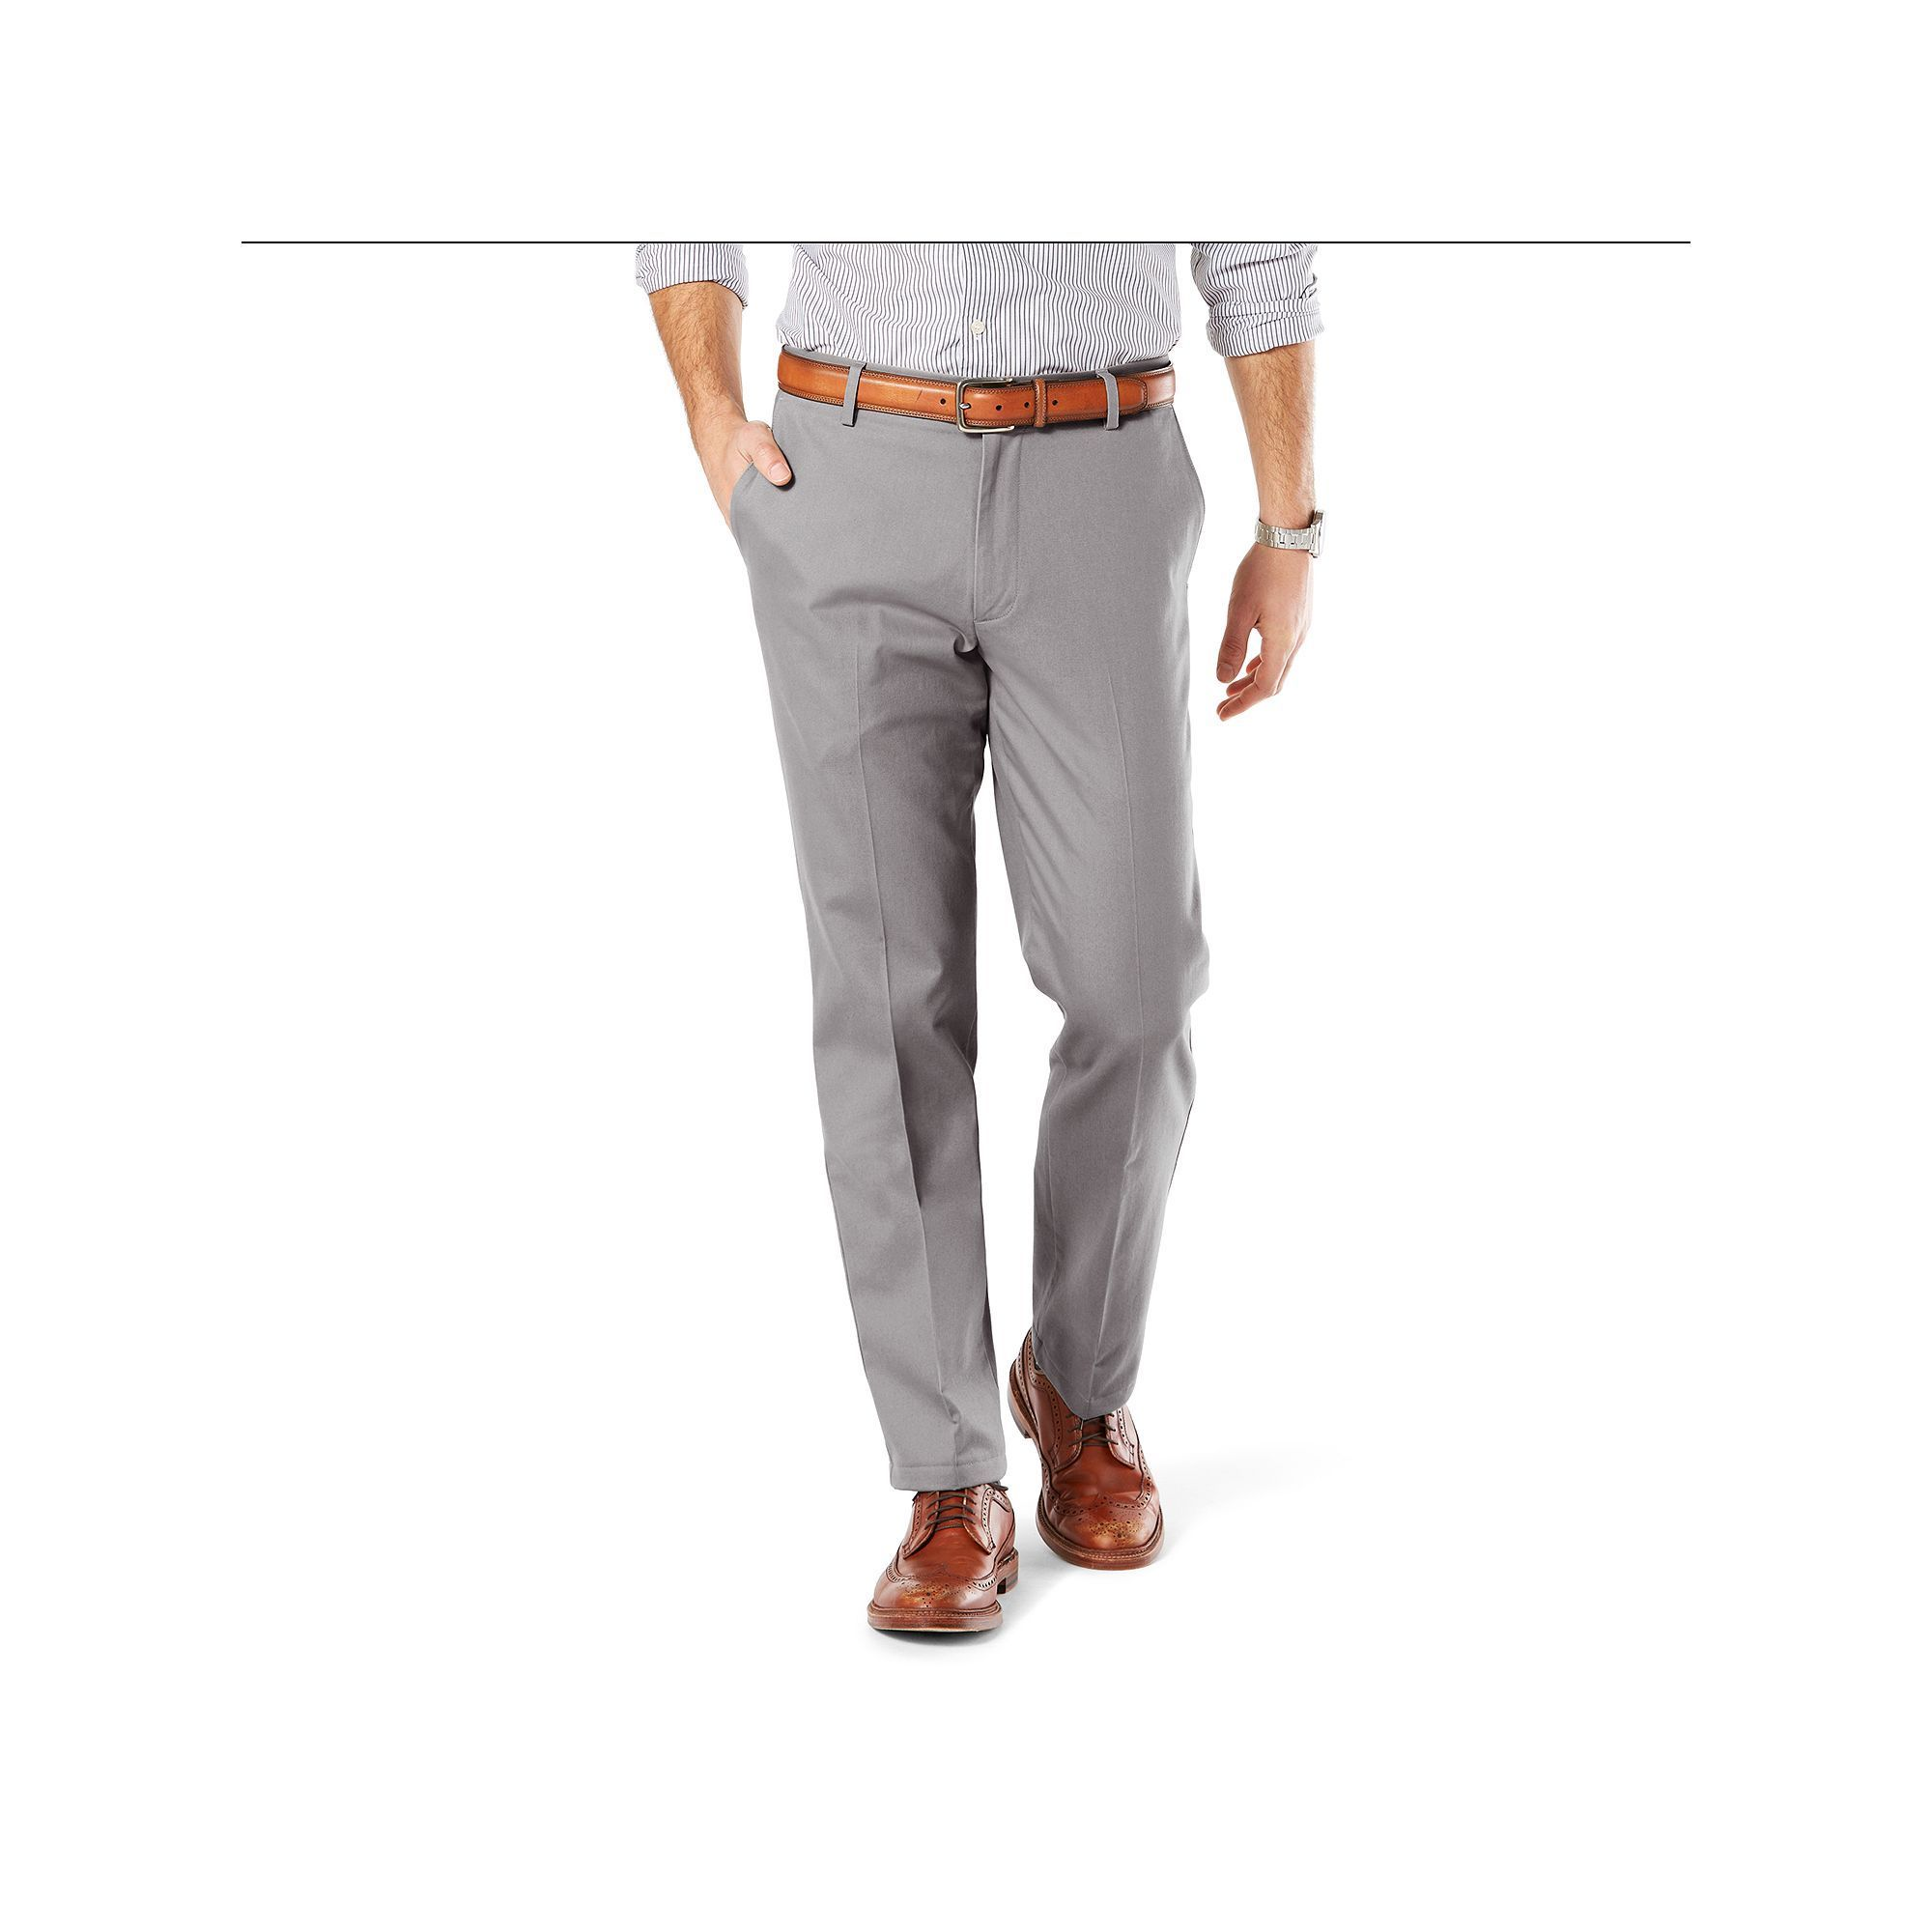 Men S Dockers Straight Fit Stretch Signature Khaki Pants D2 Khaki Pants Straight Fit Pants Khaki